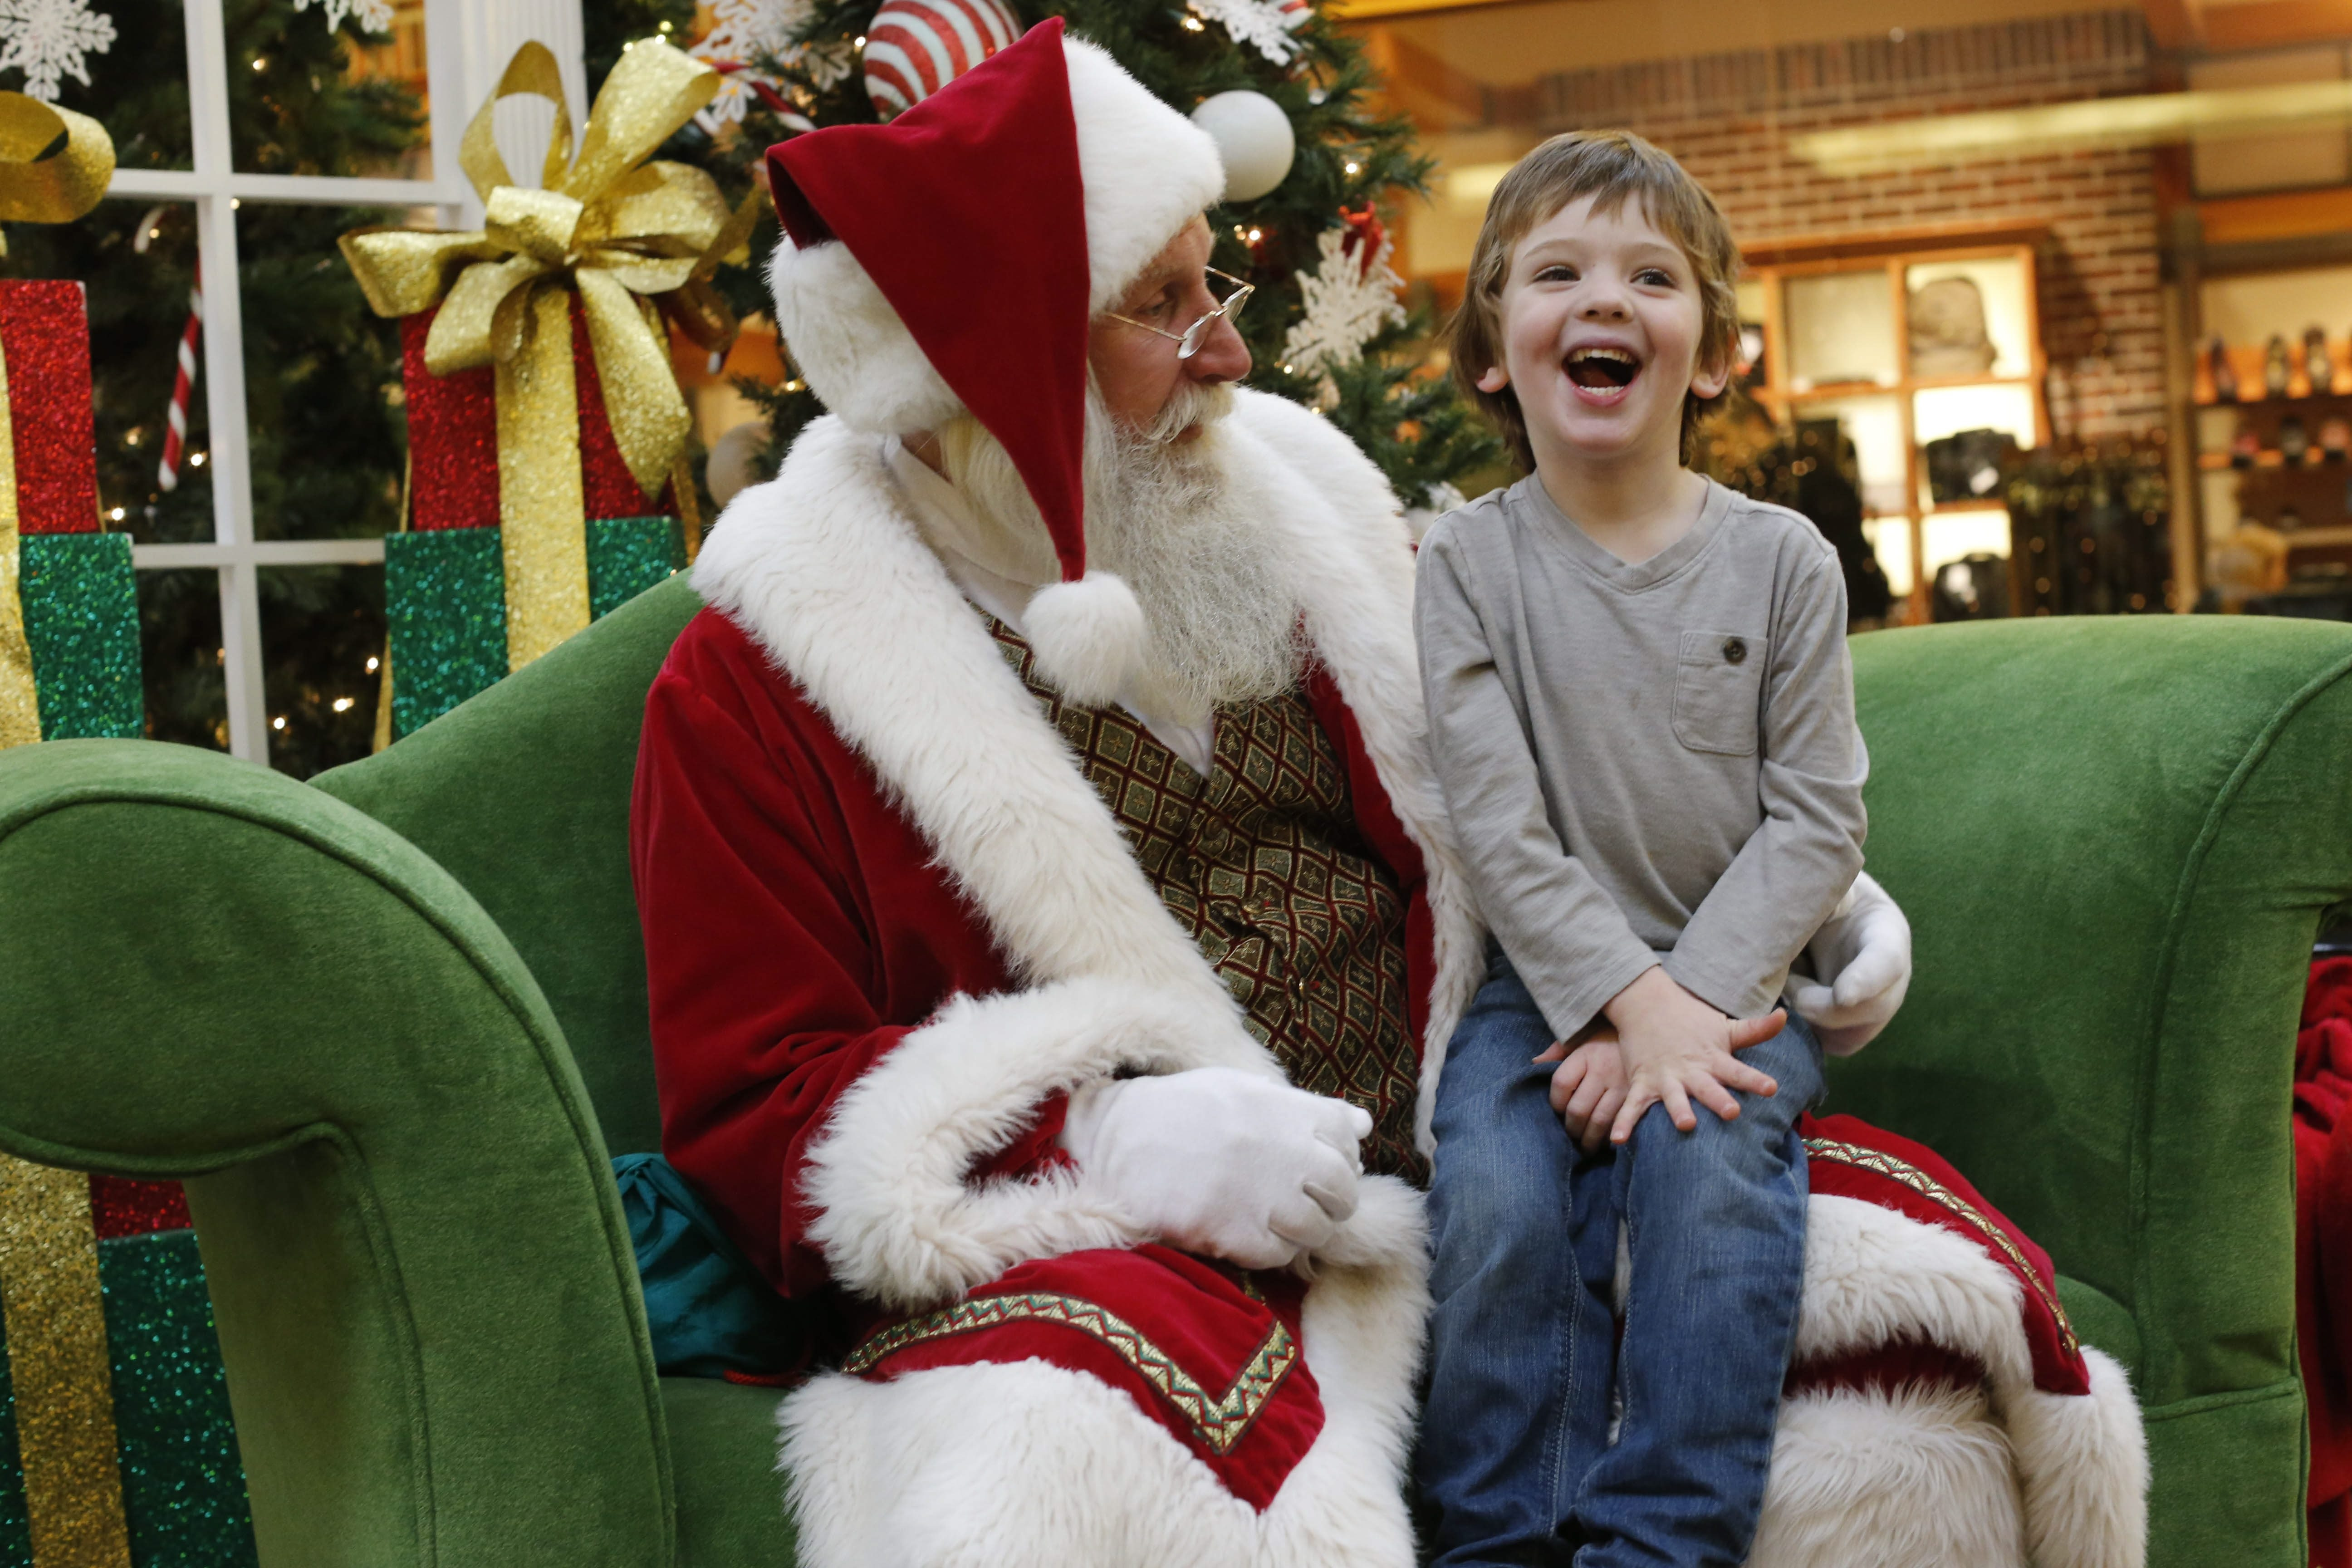 Nervous and excited, Keaton Braun, 4, of Lakeview passes on his Christmas wishes to Santa Claus at the Walden Galleria mall, Wednesday, Dec. 17, 2014.  Mike Stroh is a natural in the role of Santa, which he wears on and off the clock--year round.